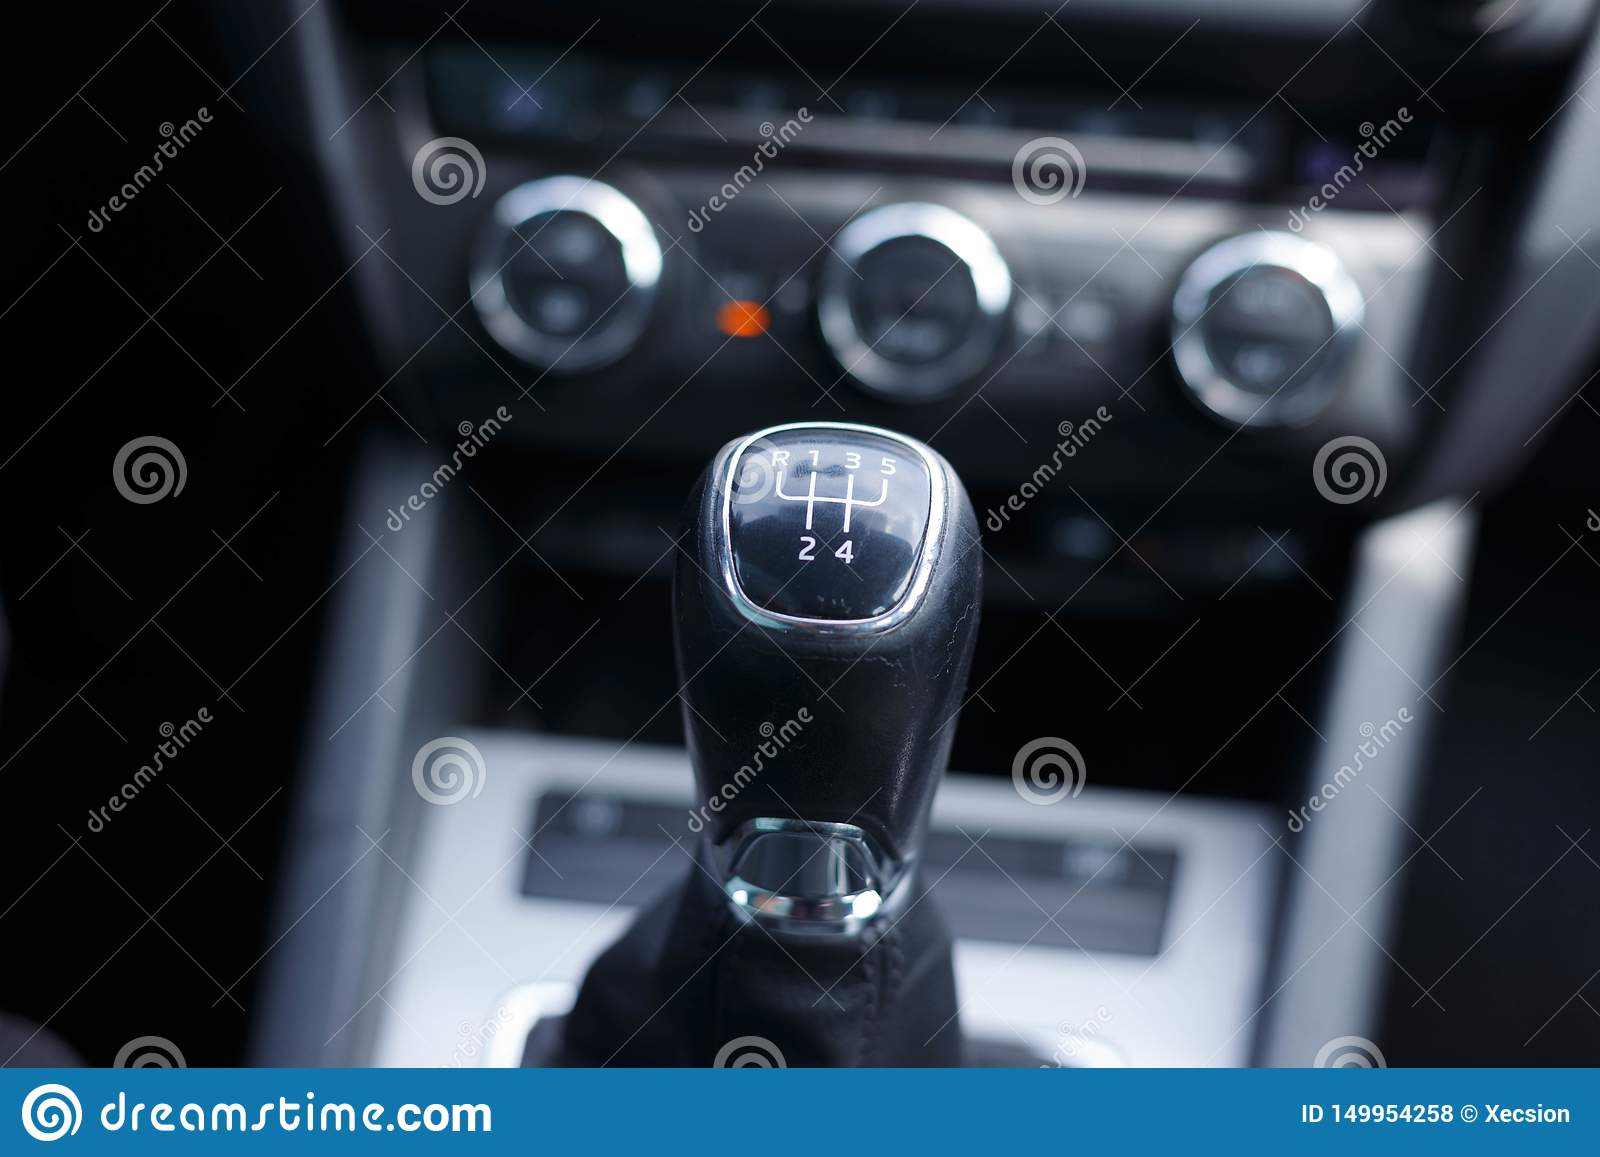 Gearshift lever of a car manual transmission.